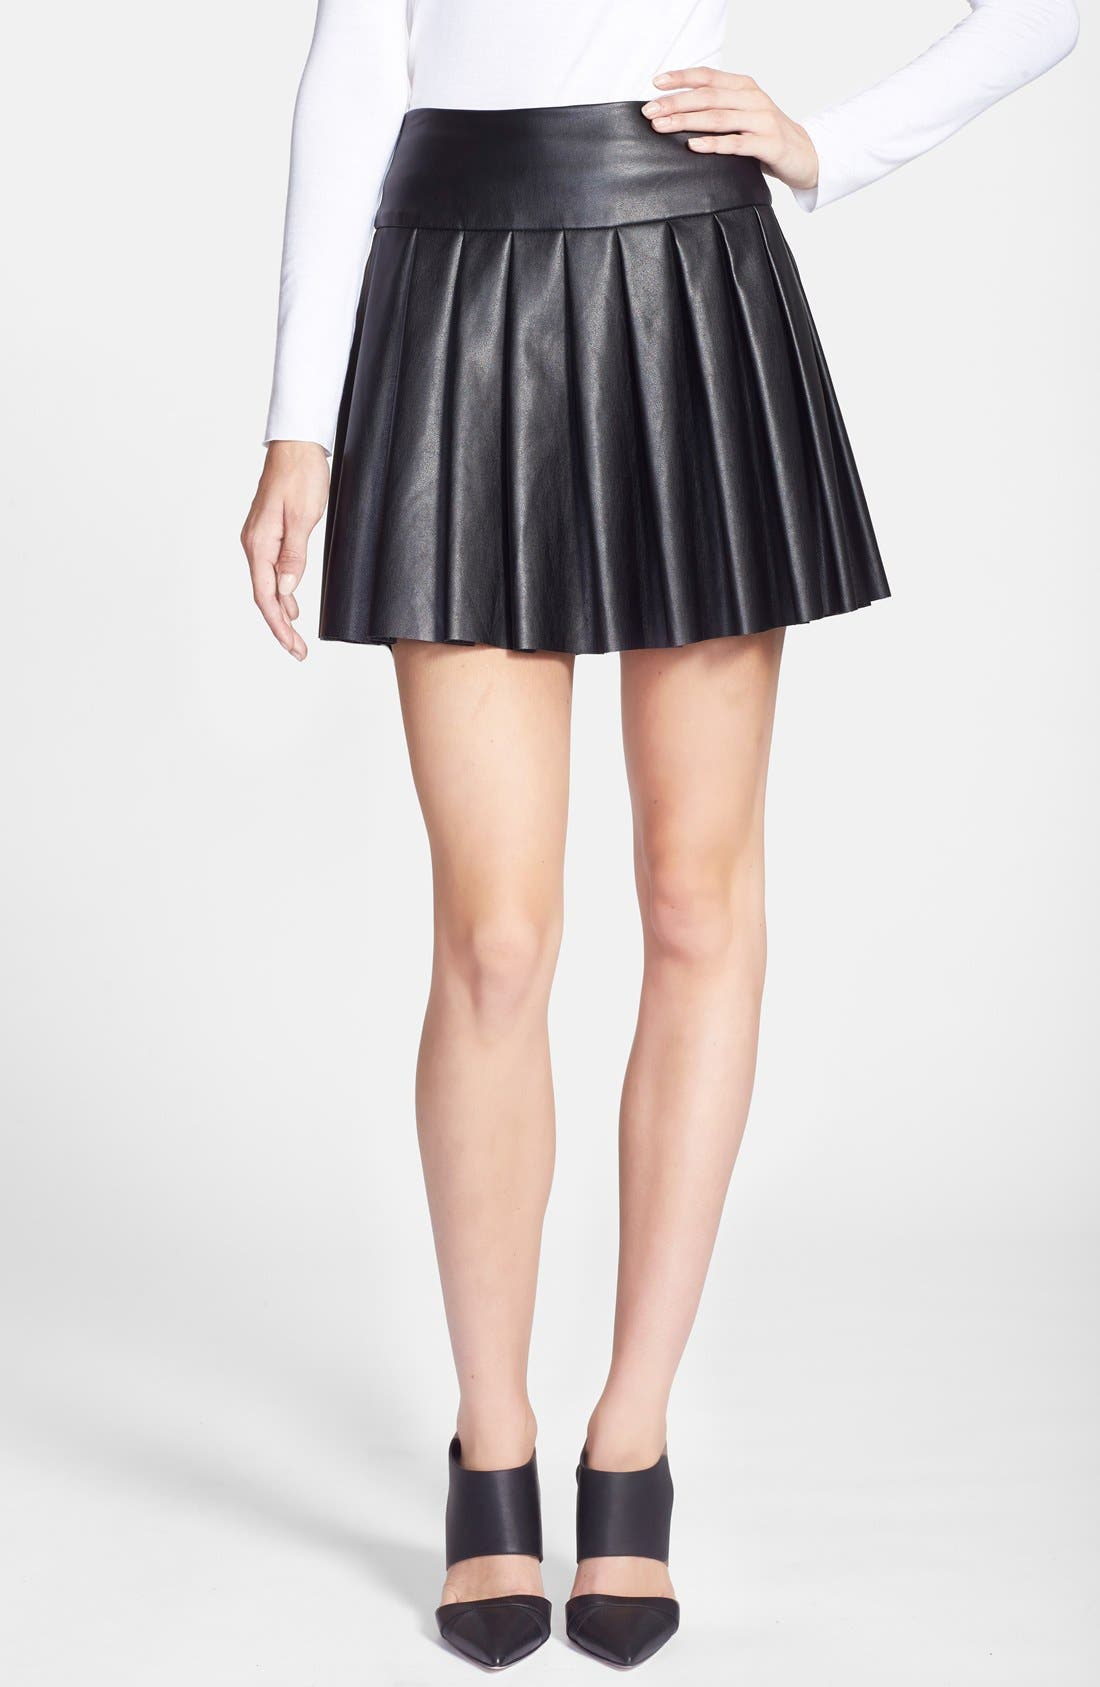 Alternate Image 1 Selected - Ella Moss 'Raquel' Pleated Faux Leather Skirt